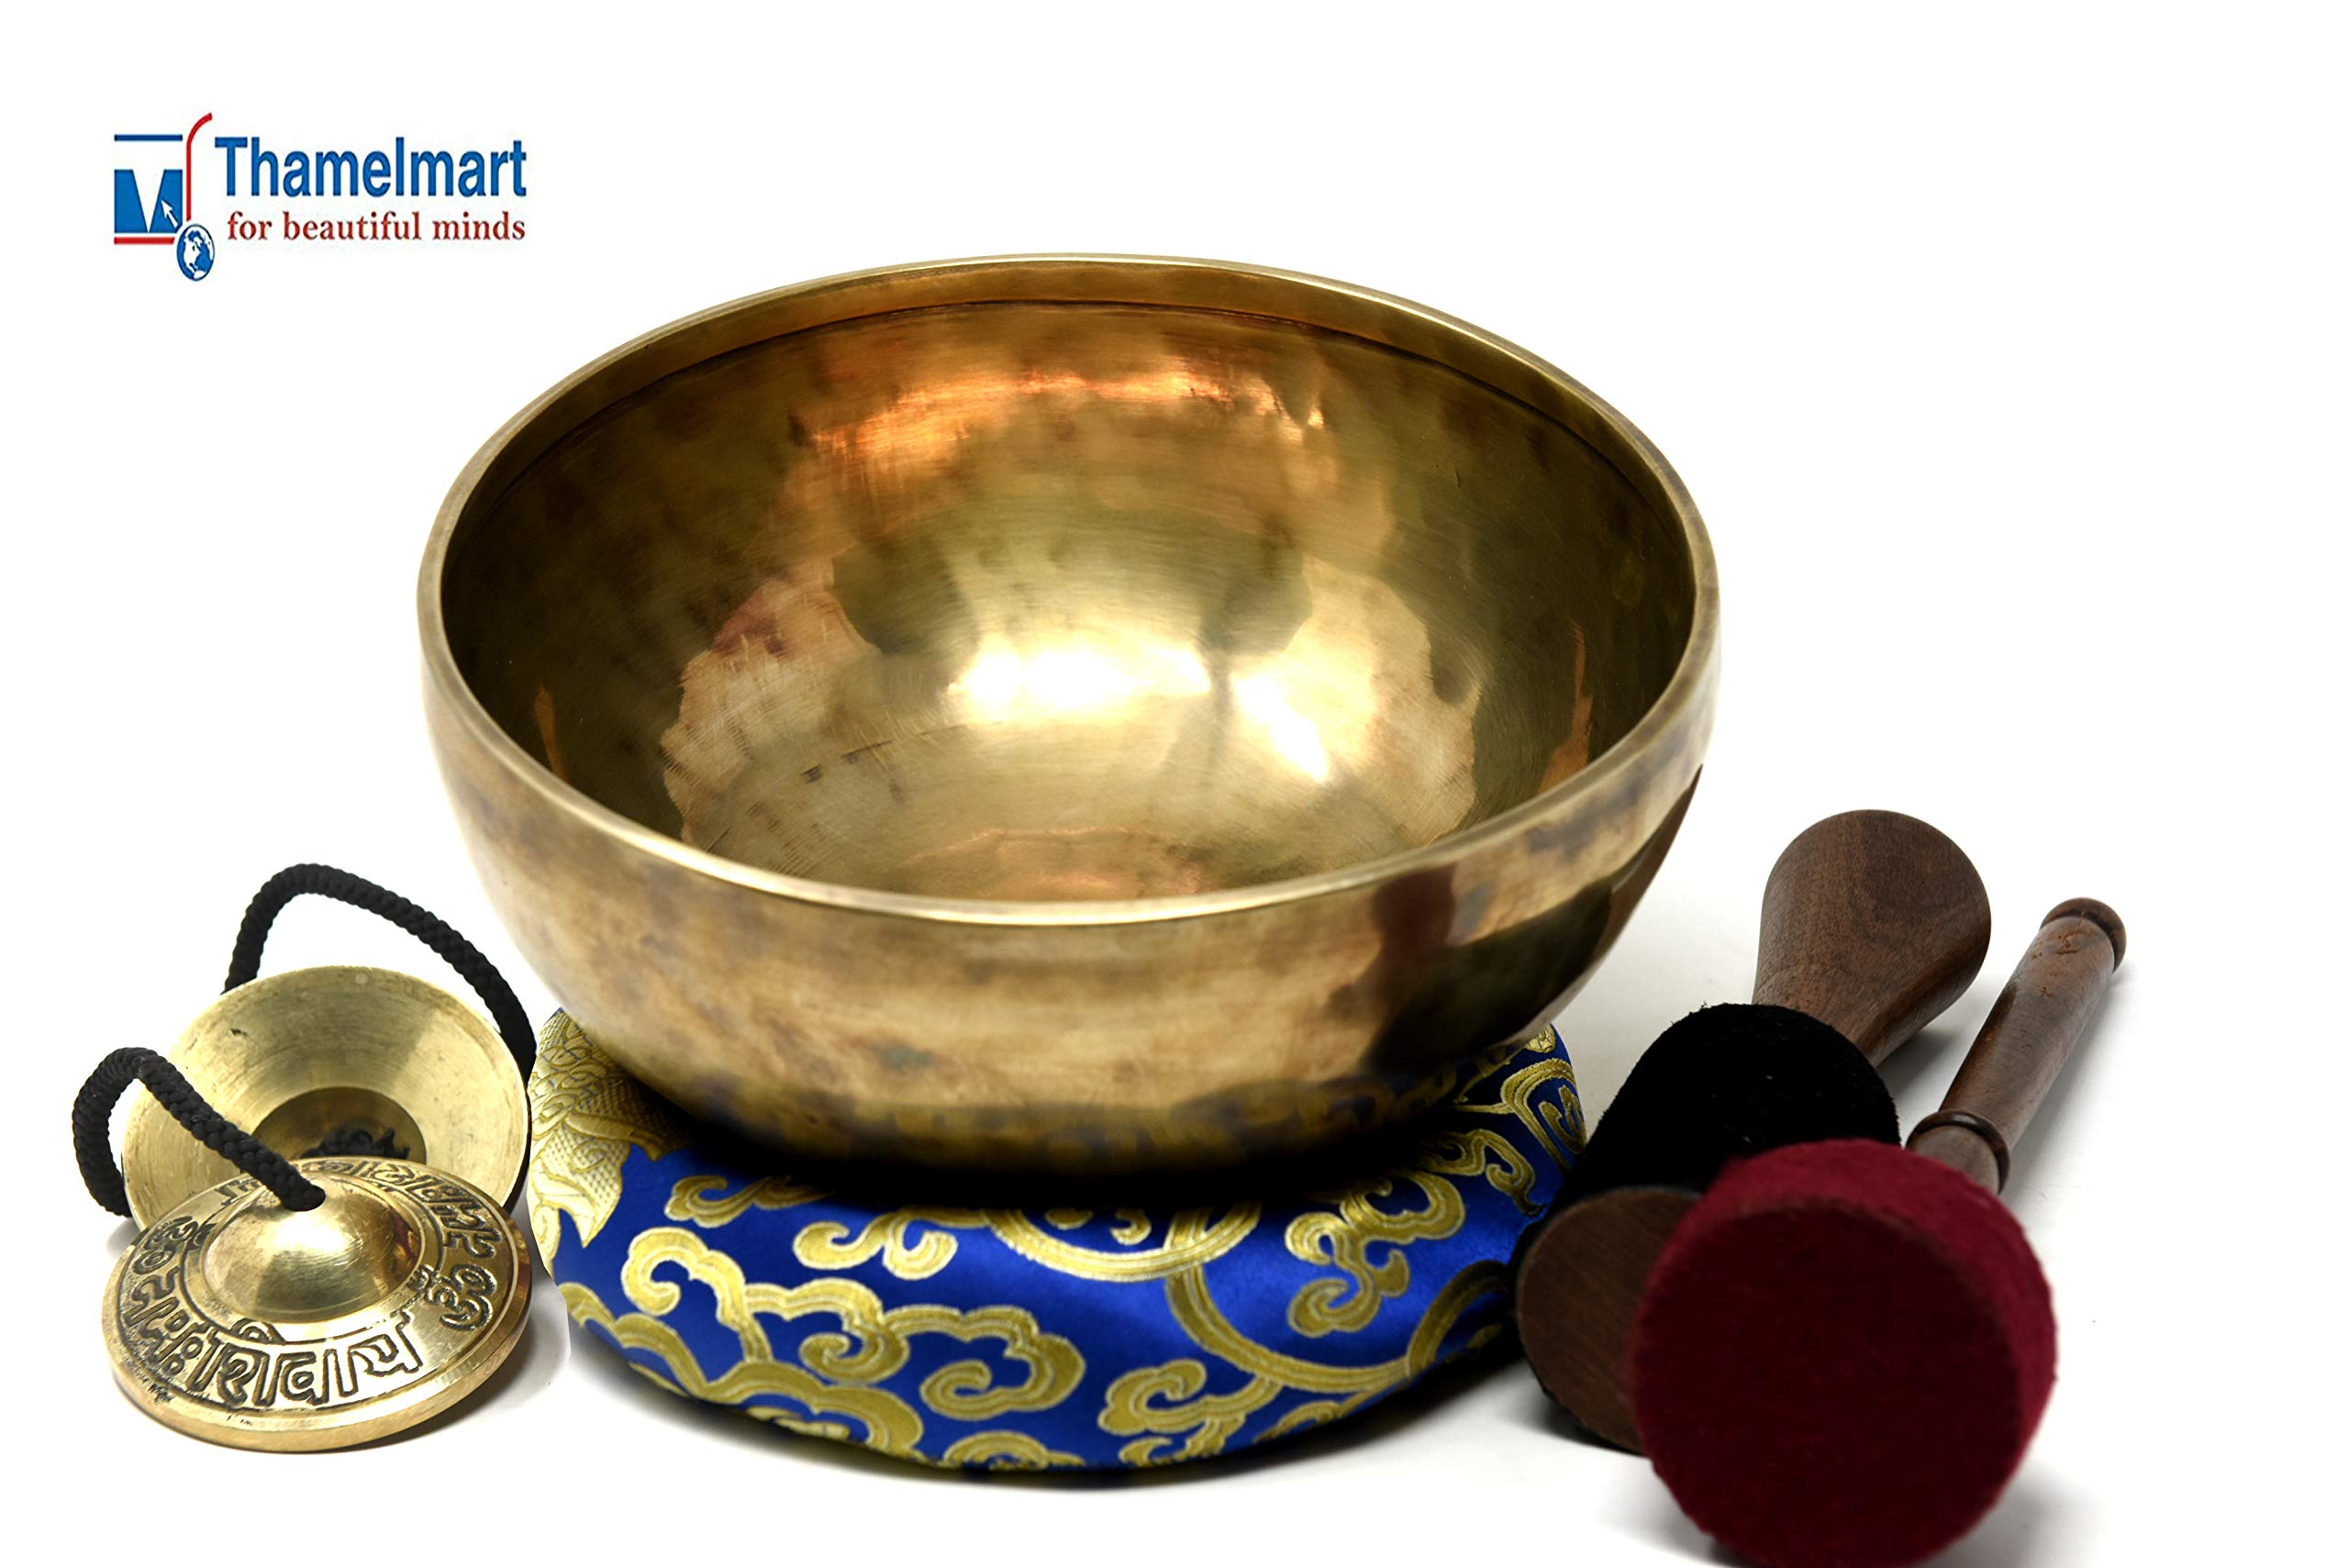 8.5'' Root Chara HandHammered Meditation Singing Bowl ~Antique Finished for Relaxation,Sound Bath,Healing,Therapy & Mindfulness~ included Tingsha cymbals Mallet,Silk Cushion,DrumStick~Handmade in Nepal by TM THAMELMART FOR BEAUTIFUL MINDS